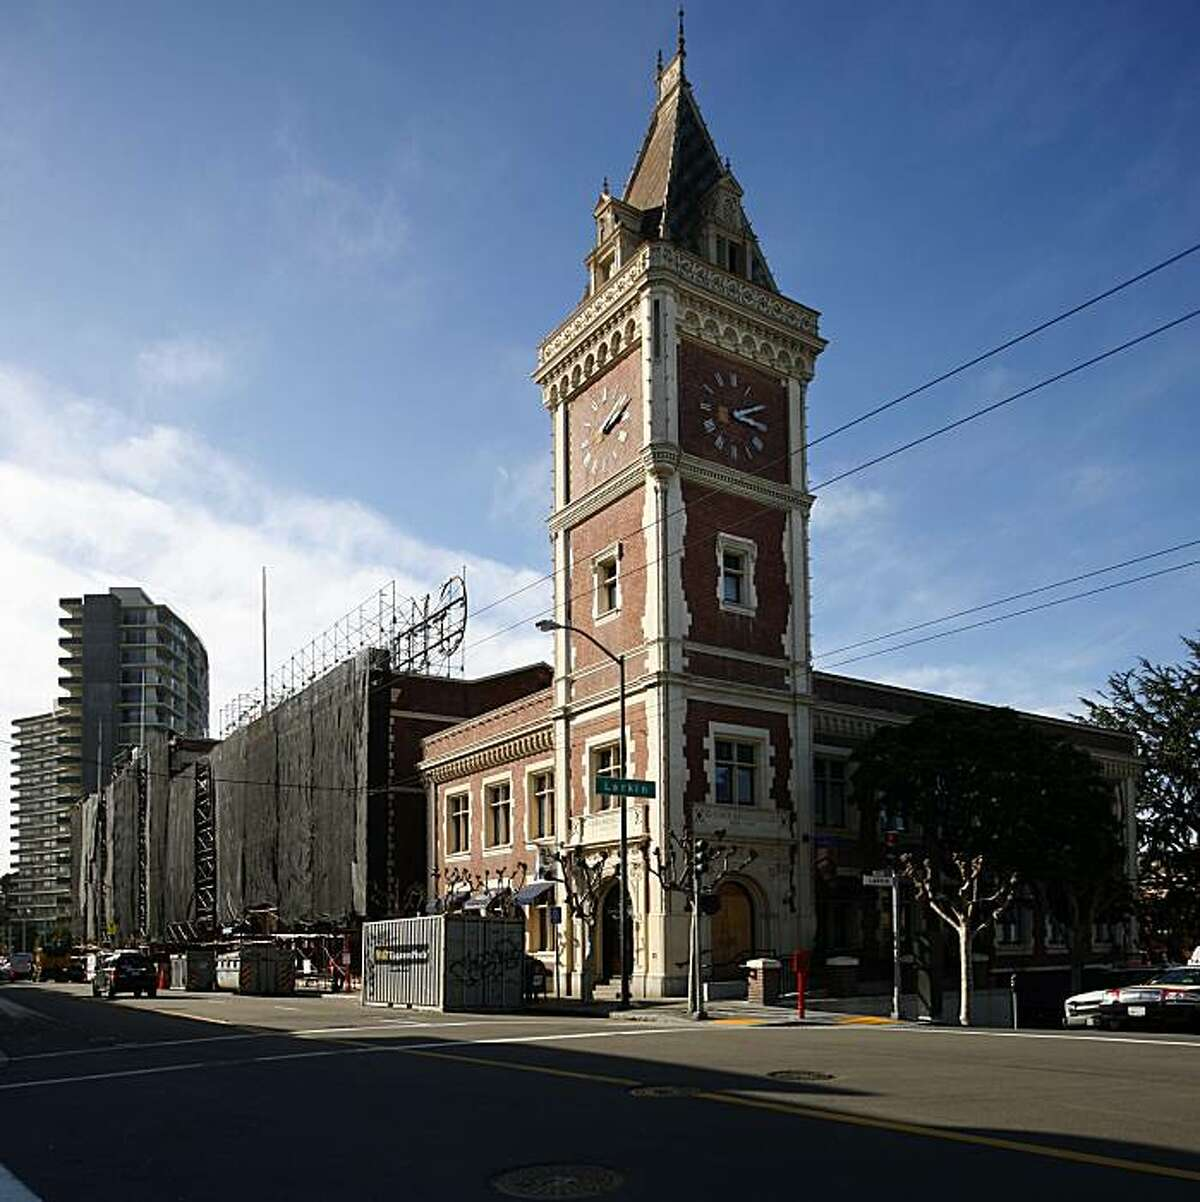 The Ghirardelli Square building in San Francisco, Calif., was undergoing major remodeling and reconstruction on February 20, 2008 to accommodate the Fairmont Heritage Place, which will be part of the complex. Photo by Kim Komenich / San Francisco Chronicle